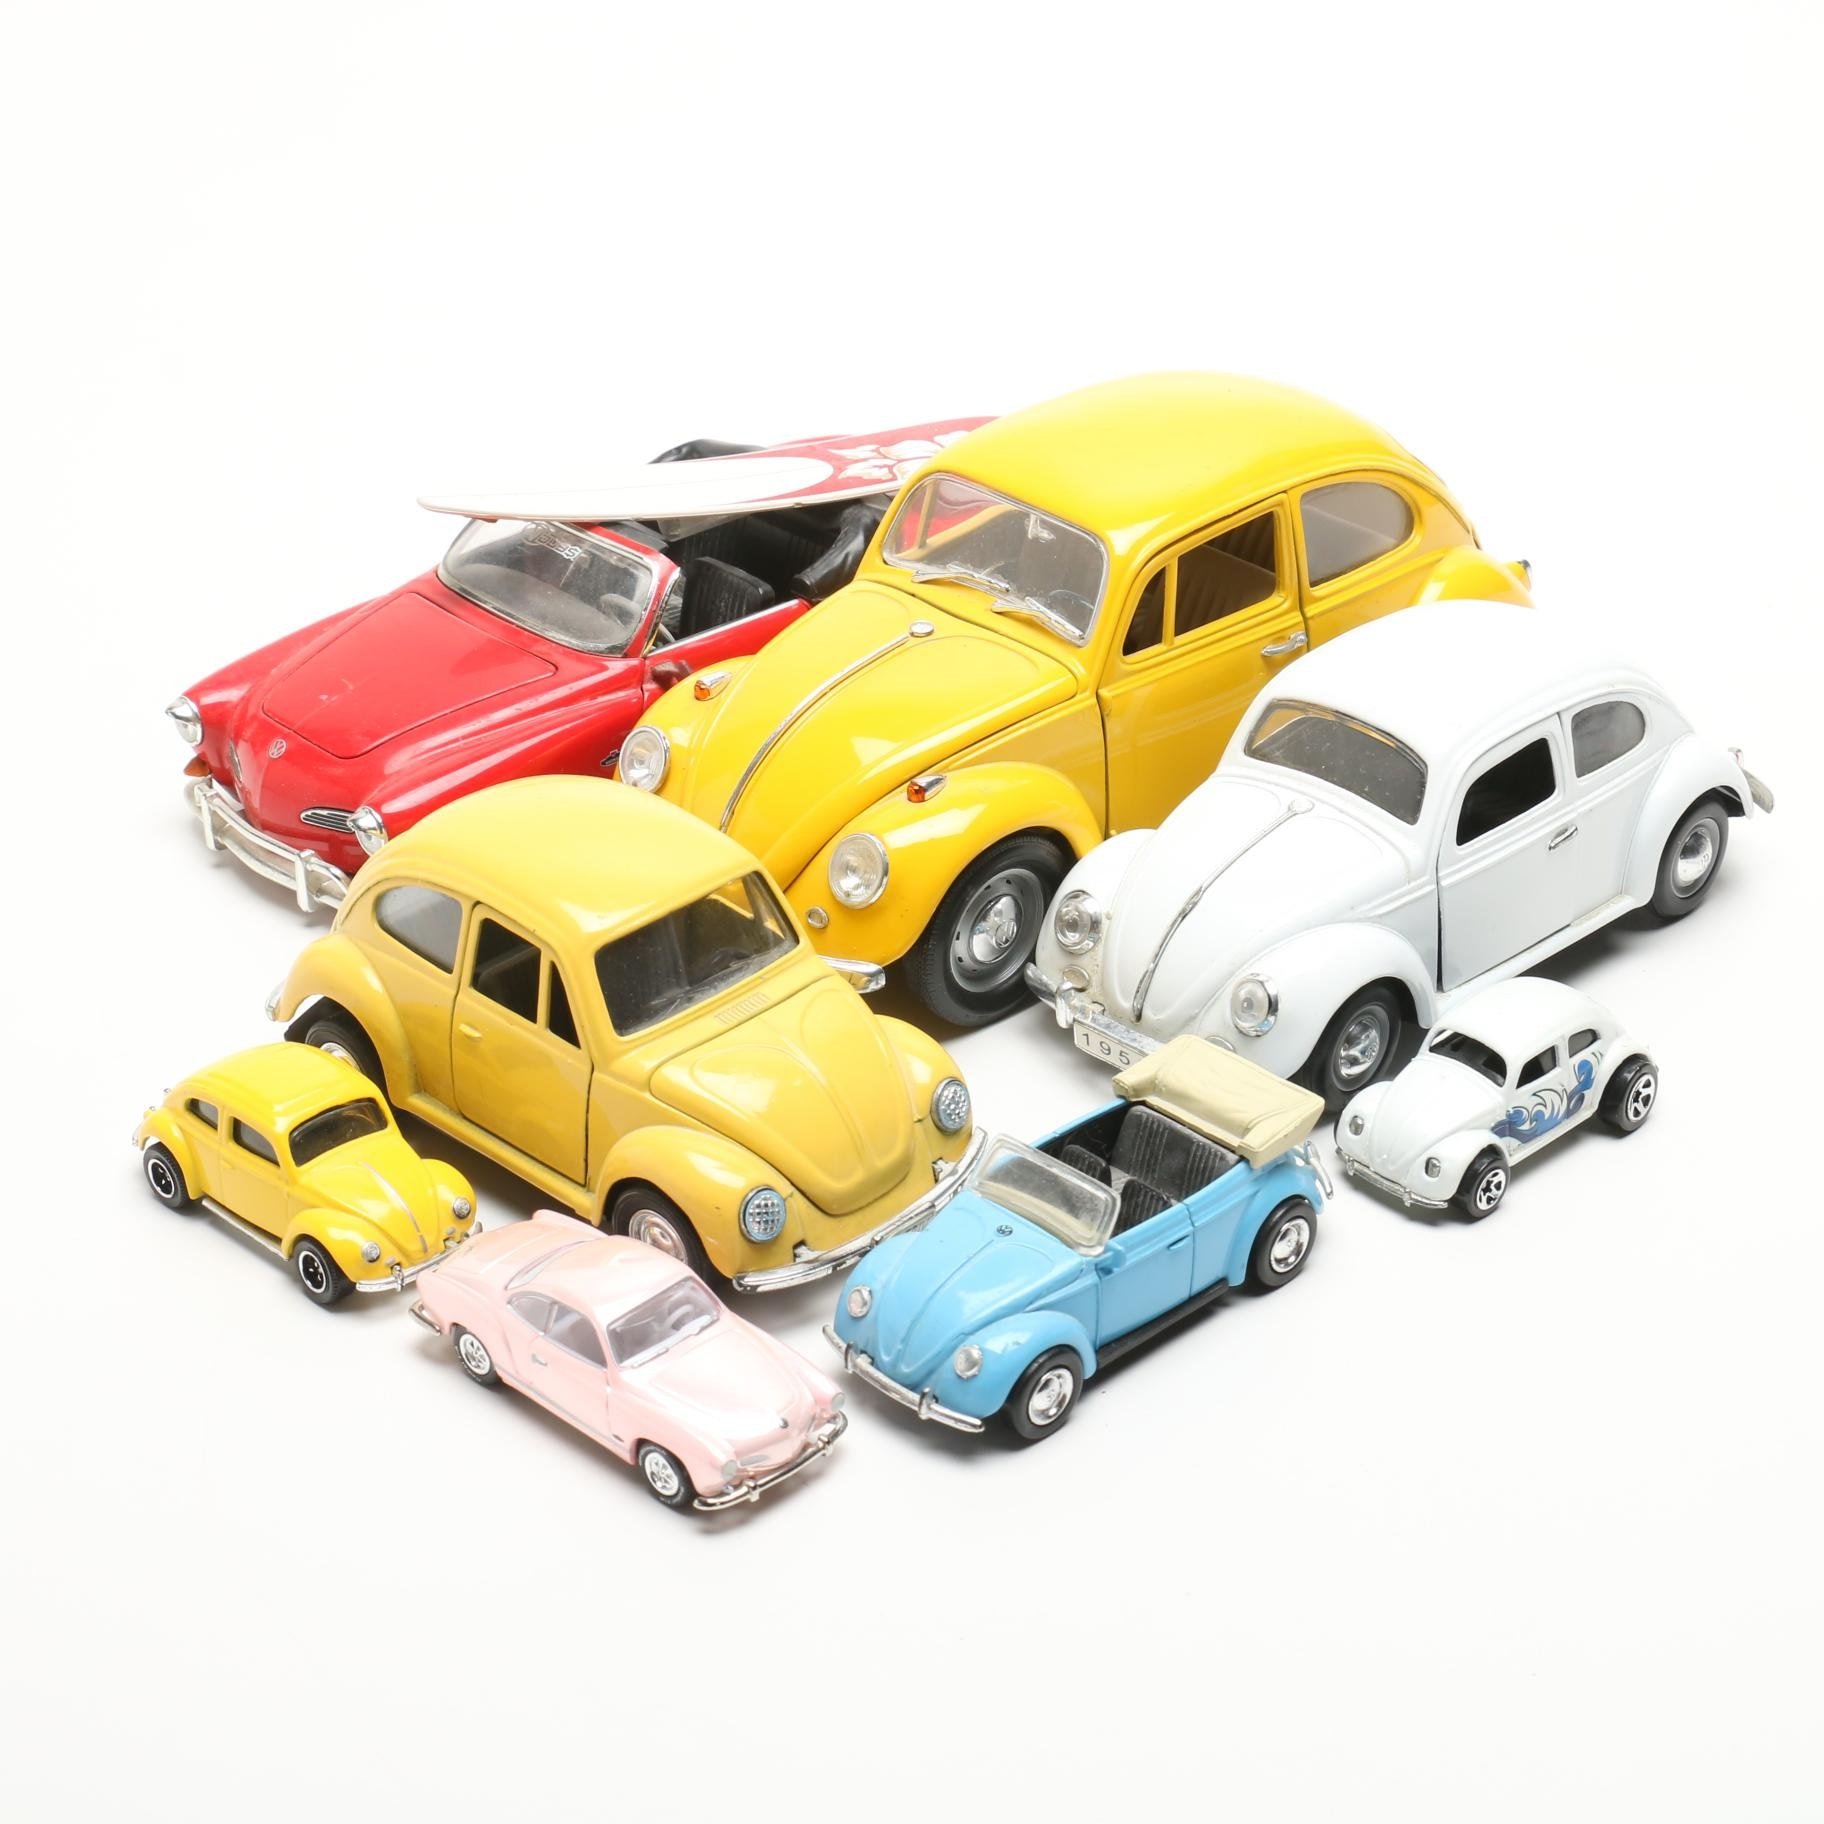 Die-Cast Metal Volkswagen Cars